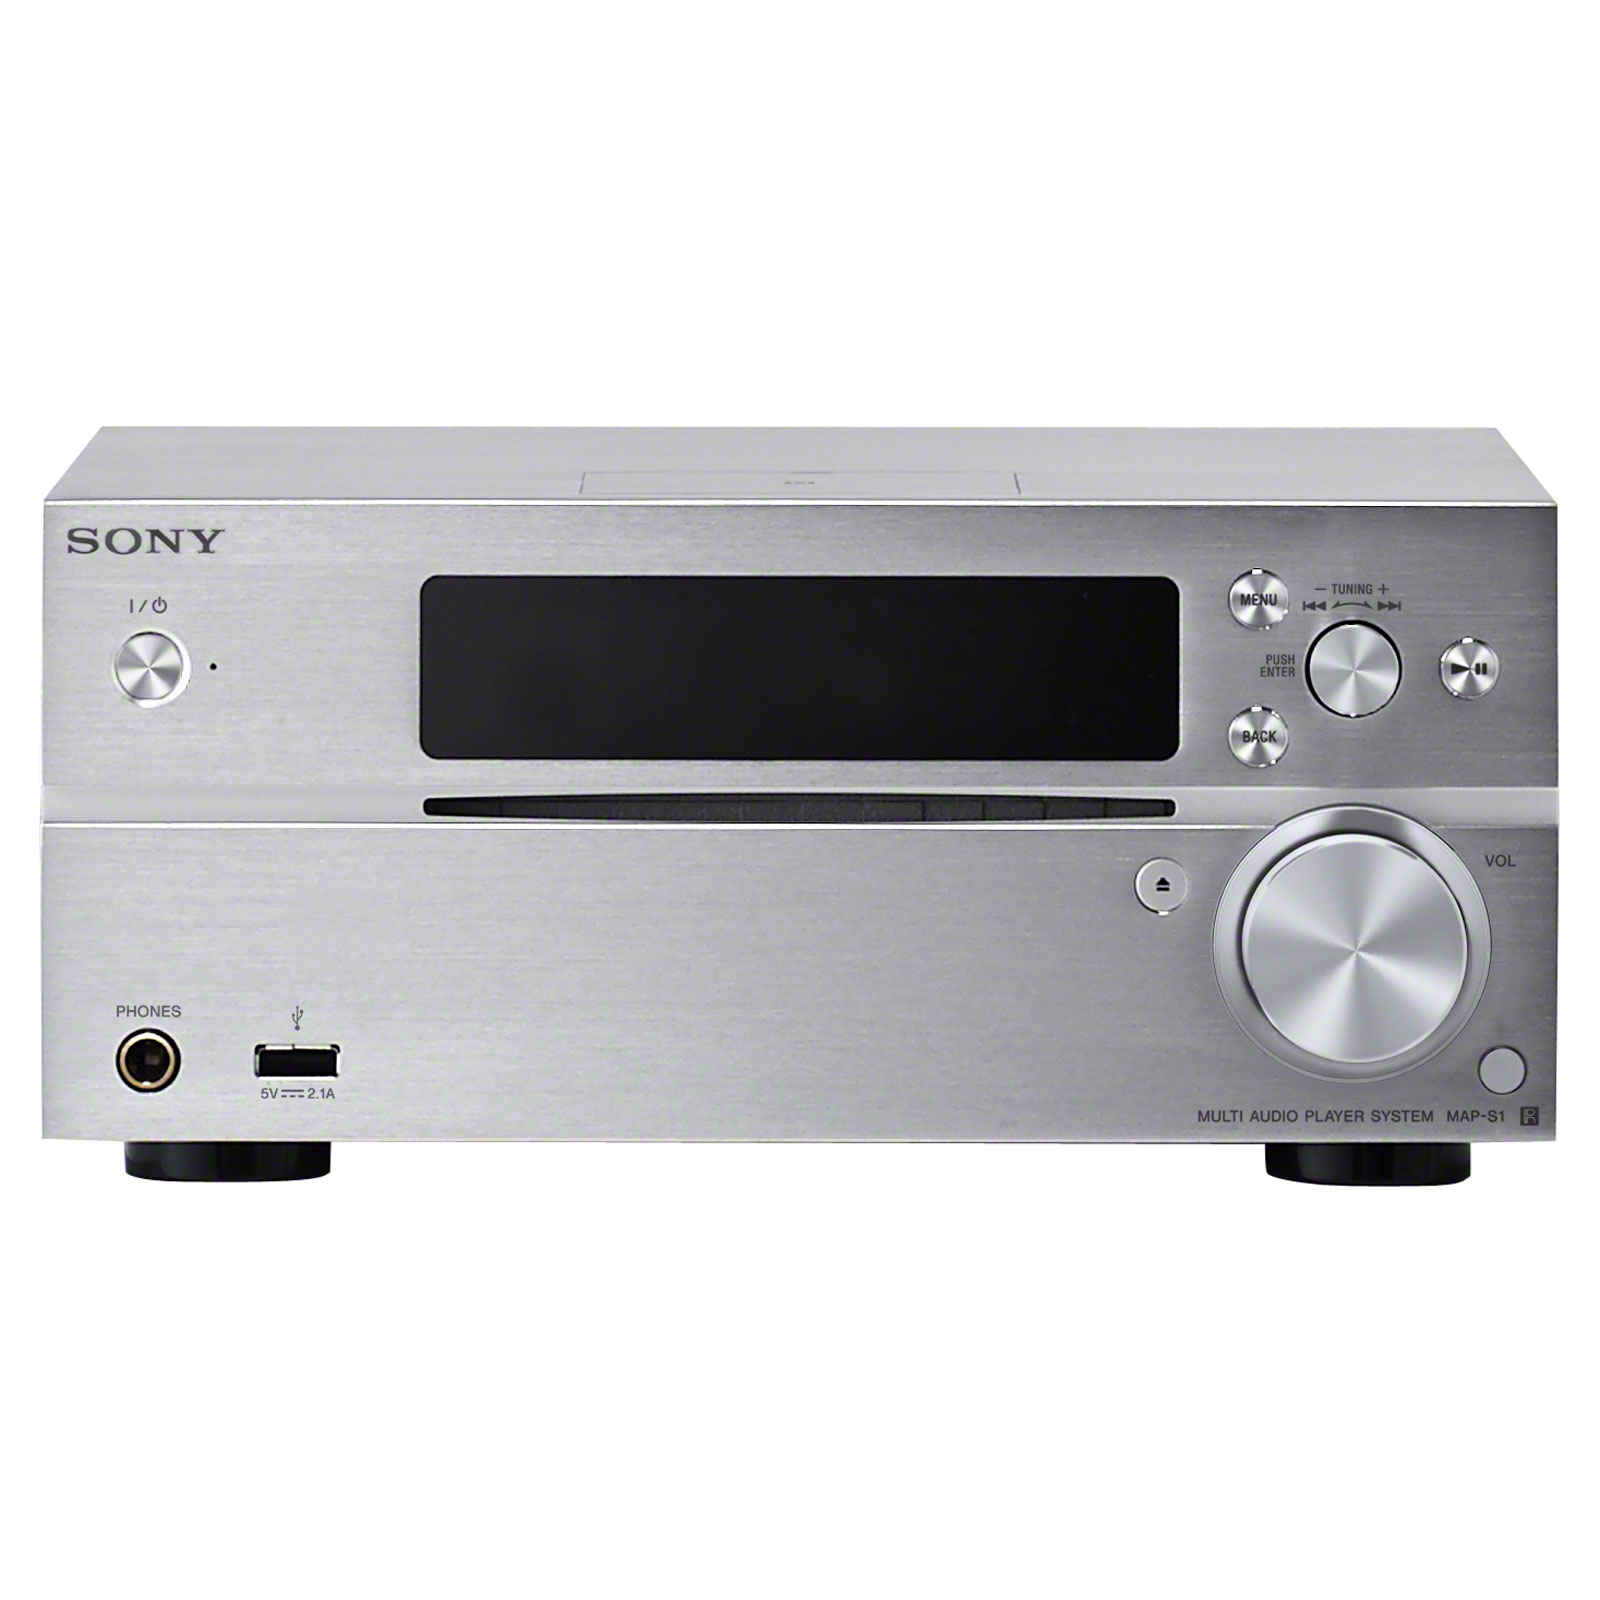 sony map s1 amplificateur hifi sony sur. Black Bedroom Furniture Sets. Home Design Ideas